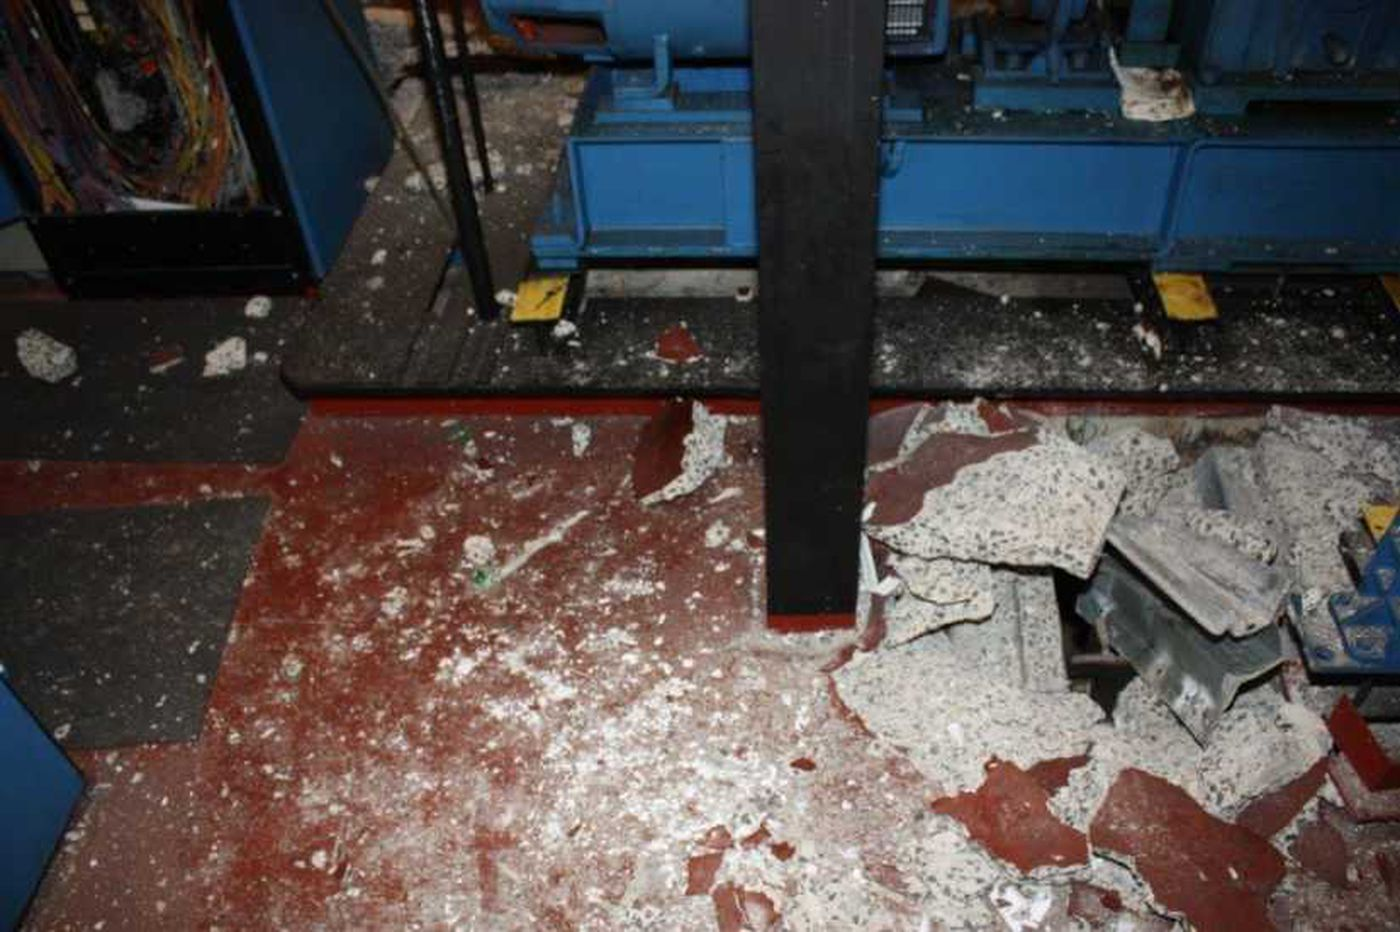 Building manager says he warned about CJC elevators before crash